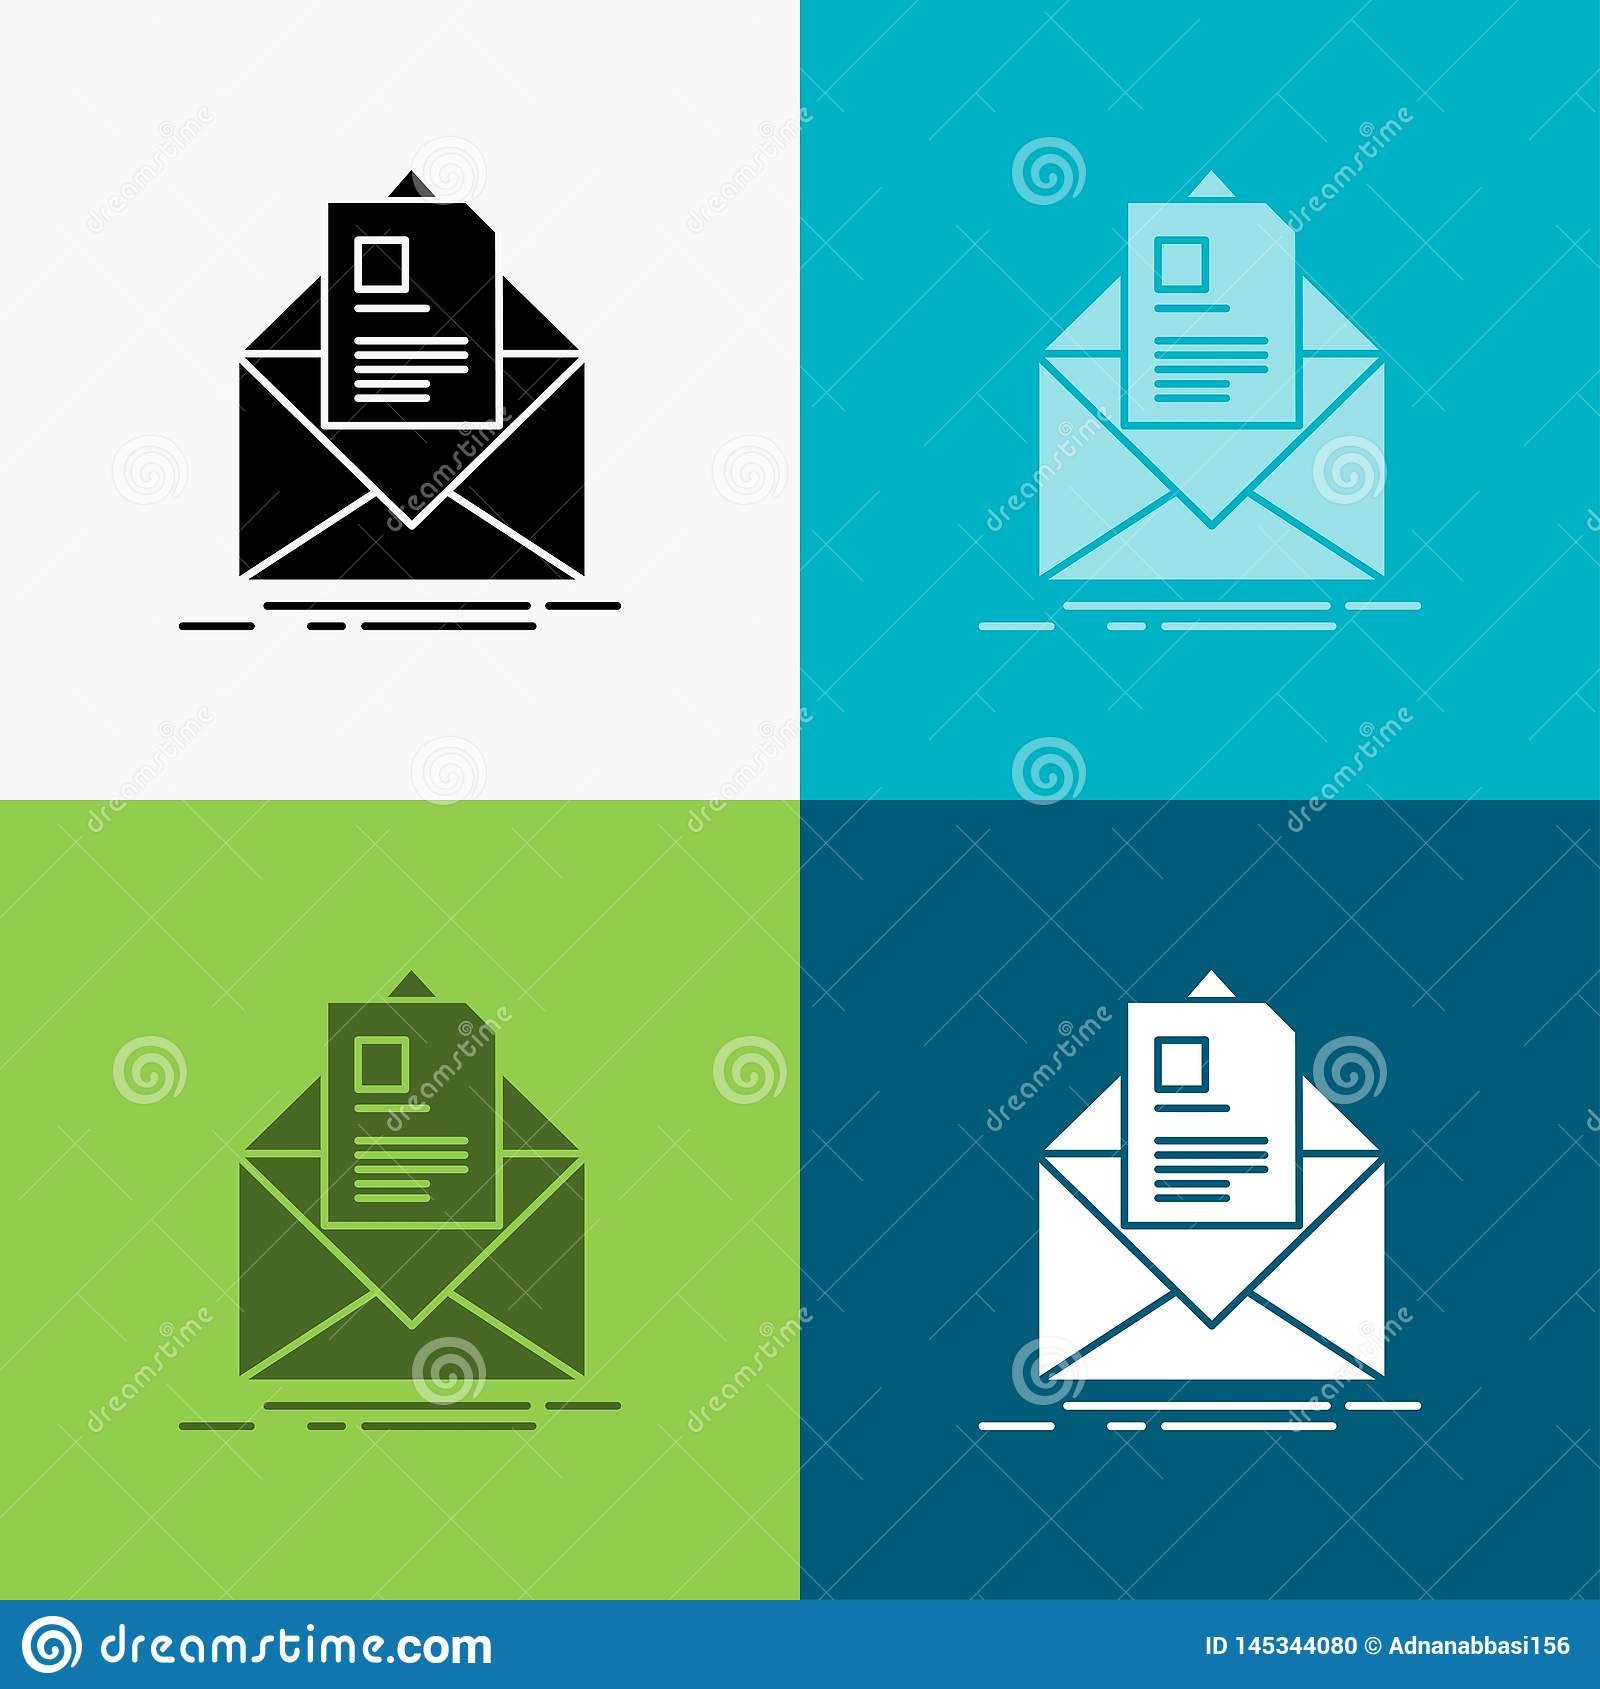 mail, contract, letter, email, briefing Icon Over Various Background. glyph style design, designed for web and app. Eps 10 vector